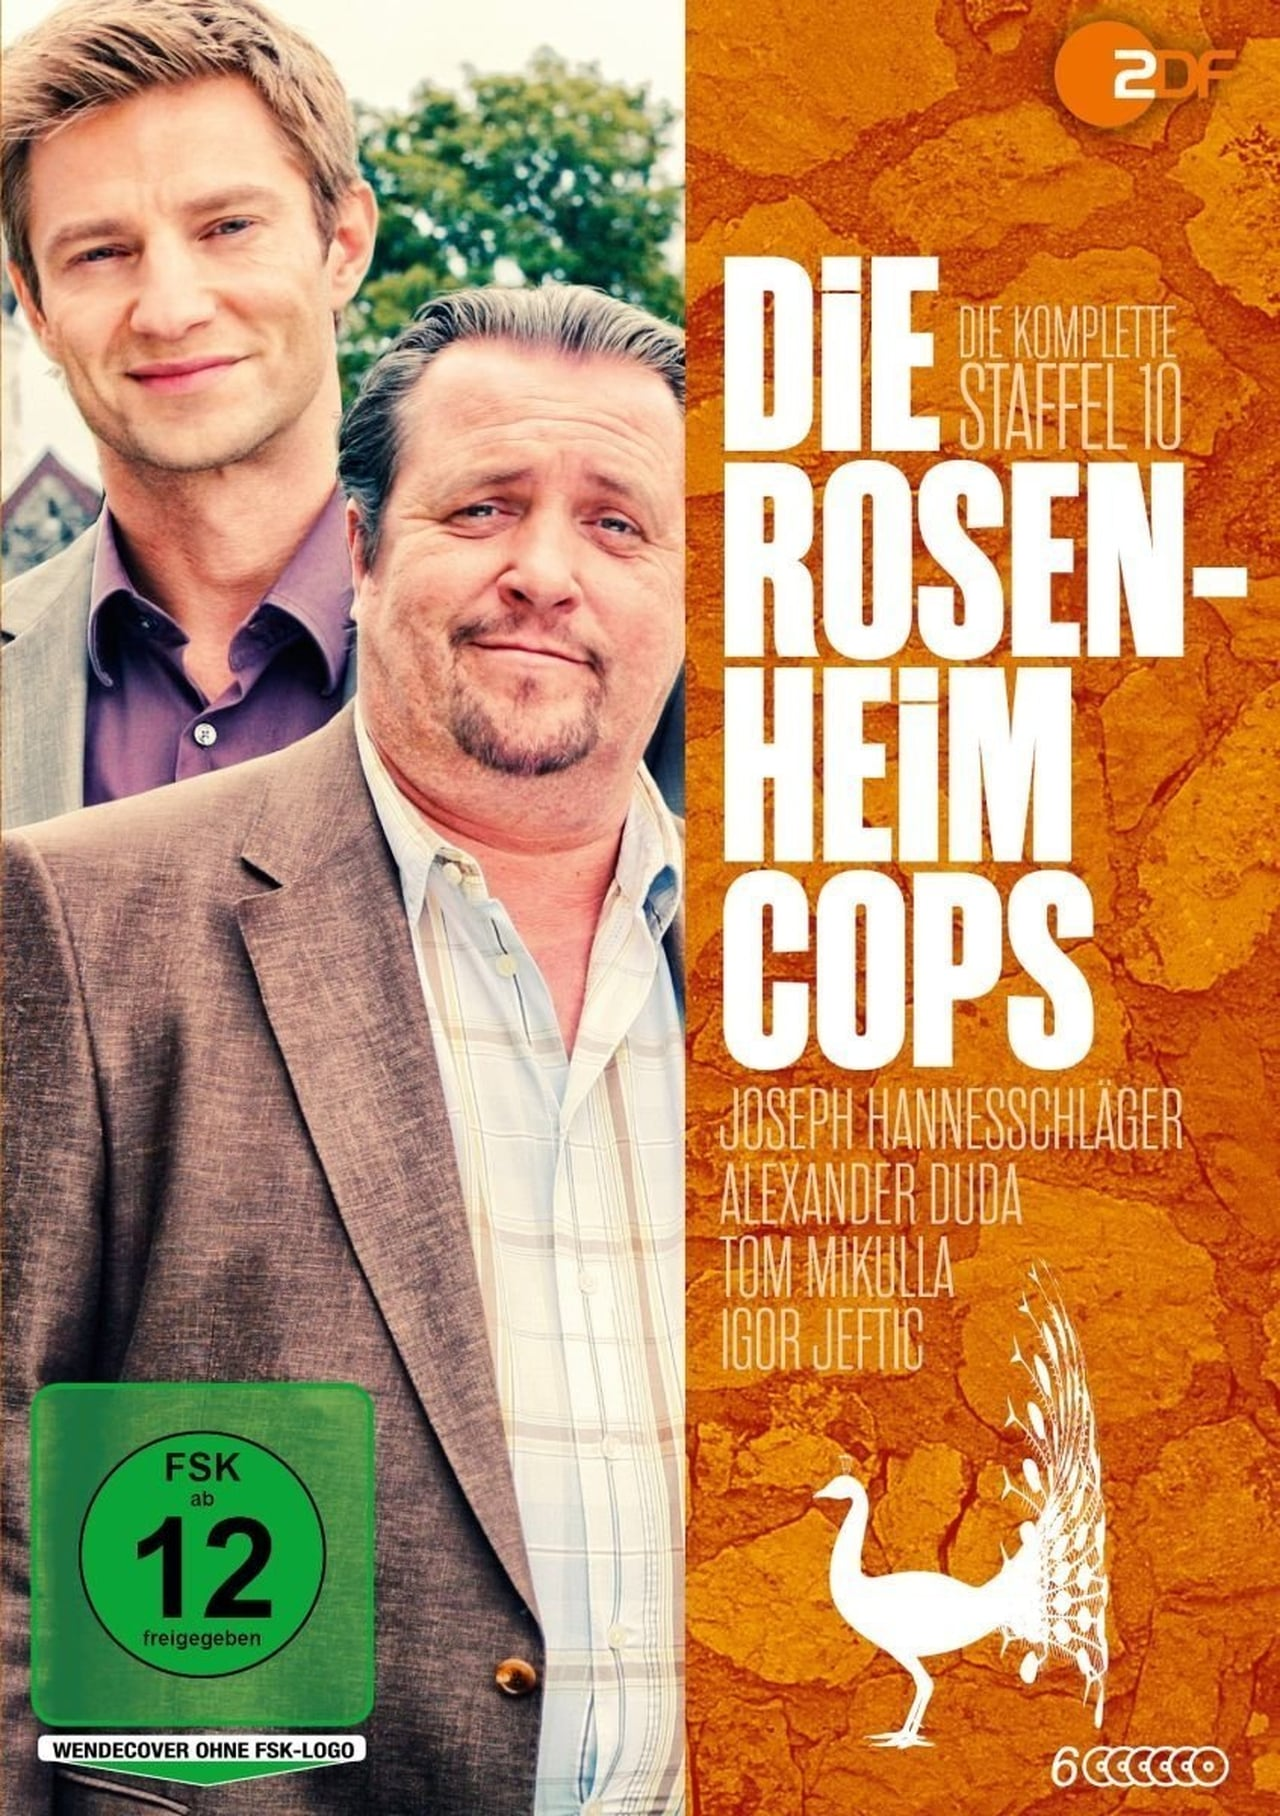 The Rosenheim Cops Season 10 (2010) putlockers cafe